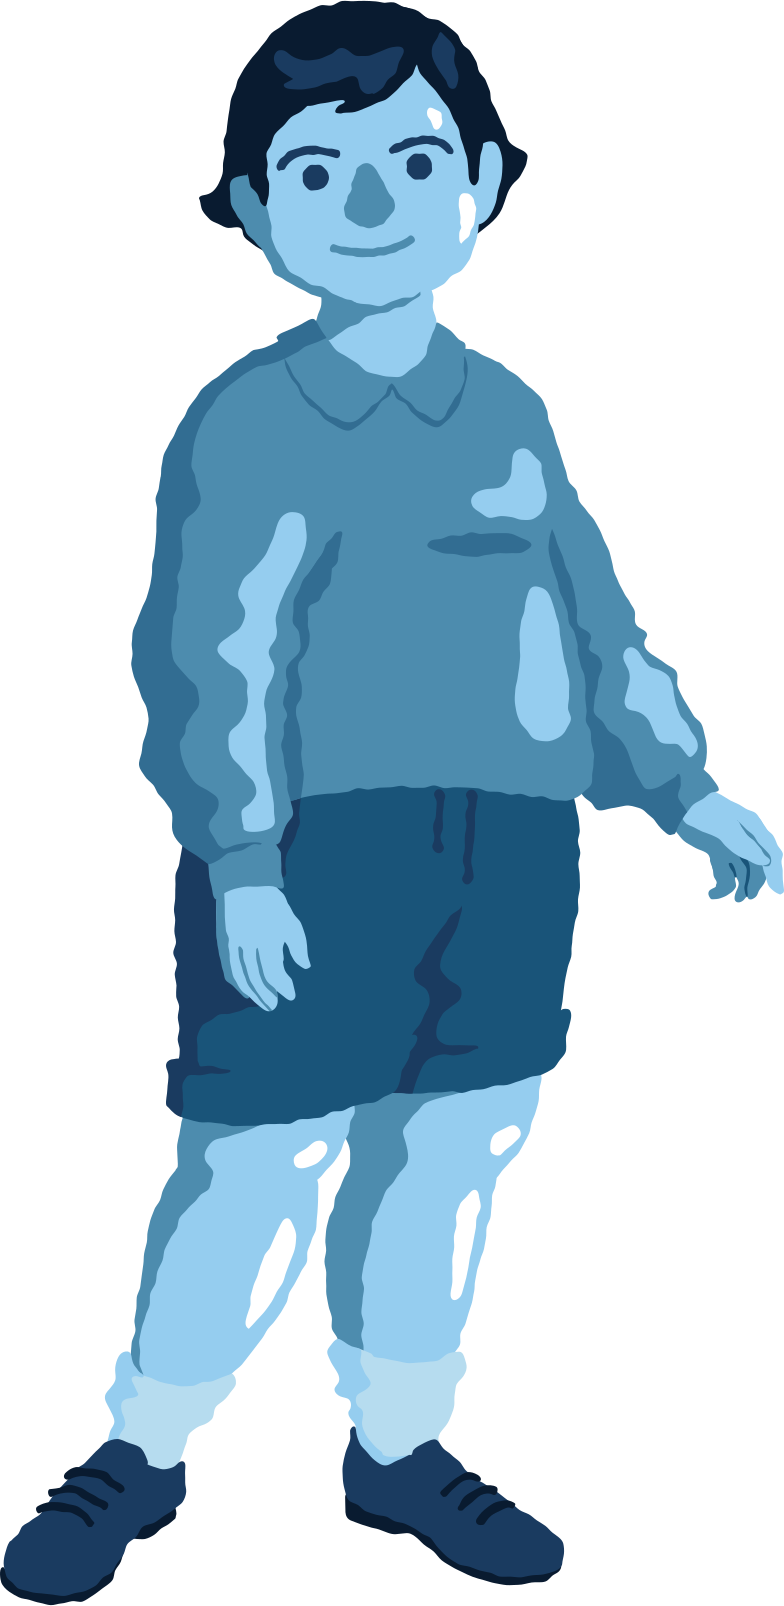 chubby boy standing front Clipart illustration in PNG, SVG